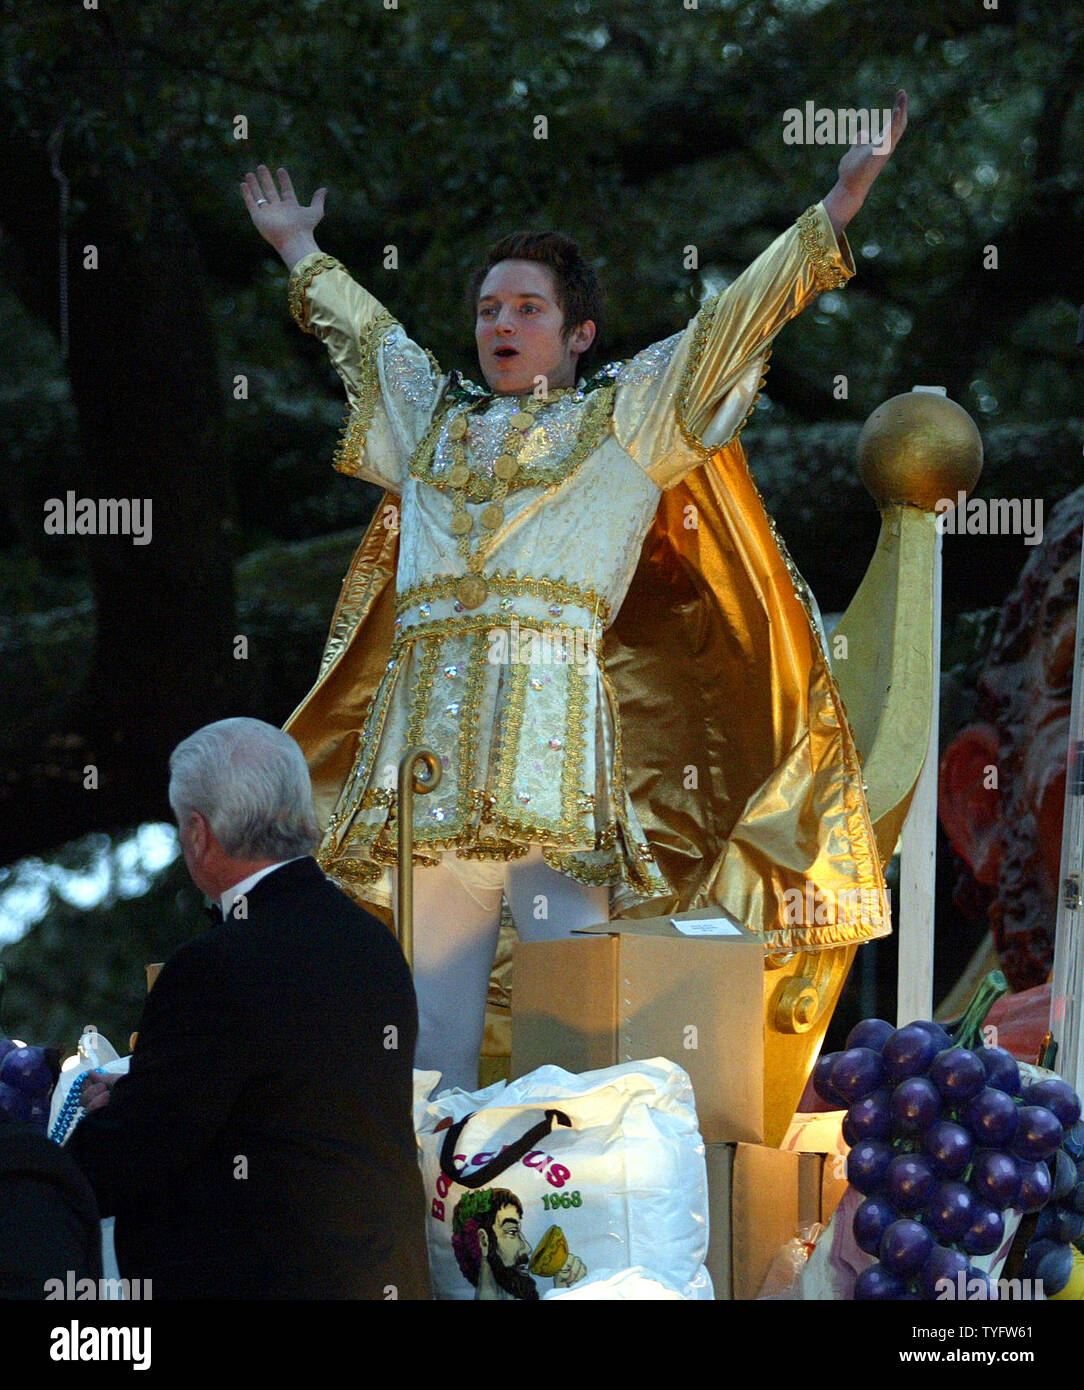 "Actor Elijah Wood, star of the ""Lord of the Rings"" movies reigns as Bacchus 2004 during the Krewe of Bacchus Parade in Uptown New Orleans February 22, 2004. Fat Tuesday is February 24.   (UPI Photo / A.J. Sisco) Stock Photo"